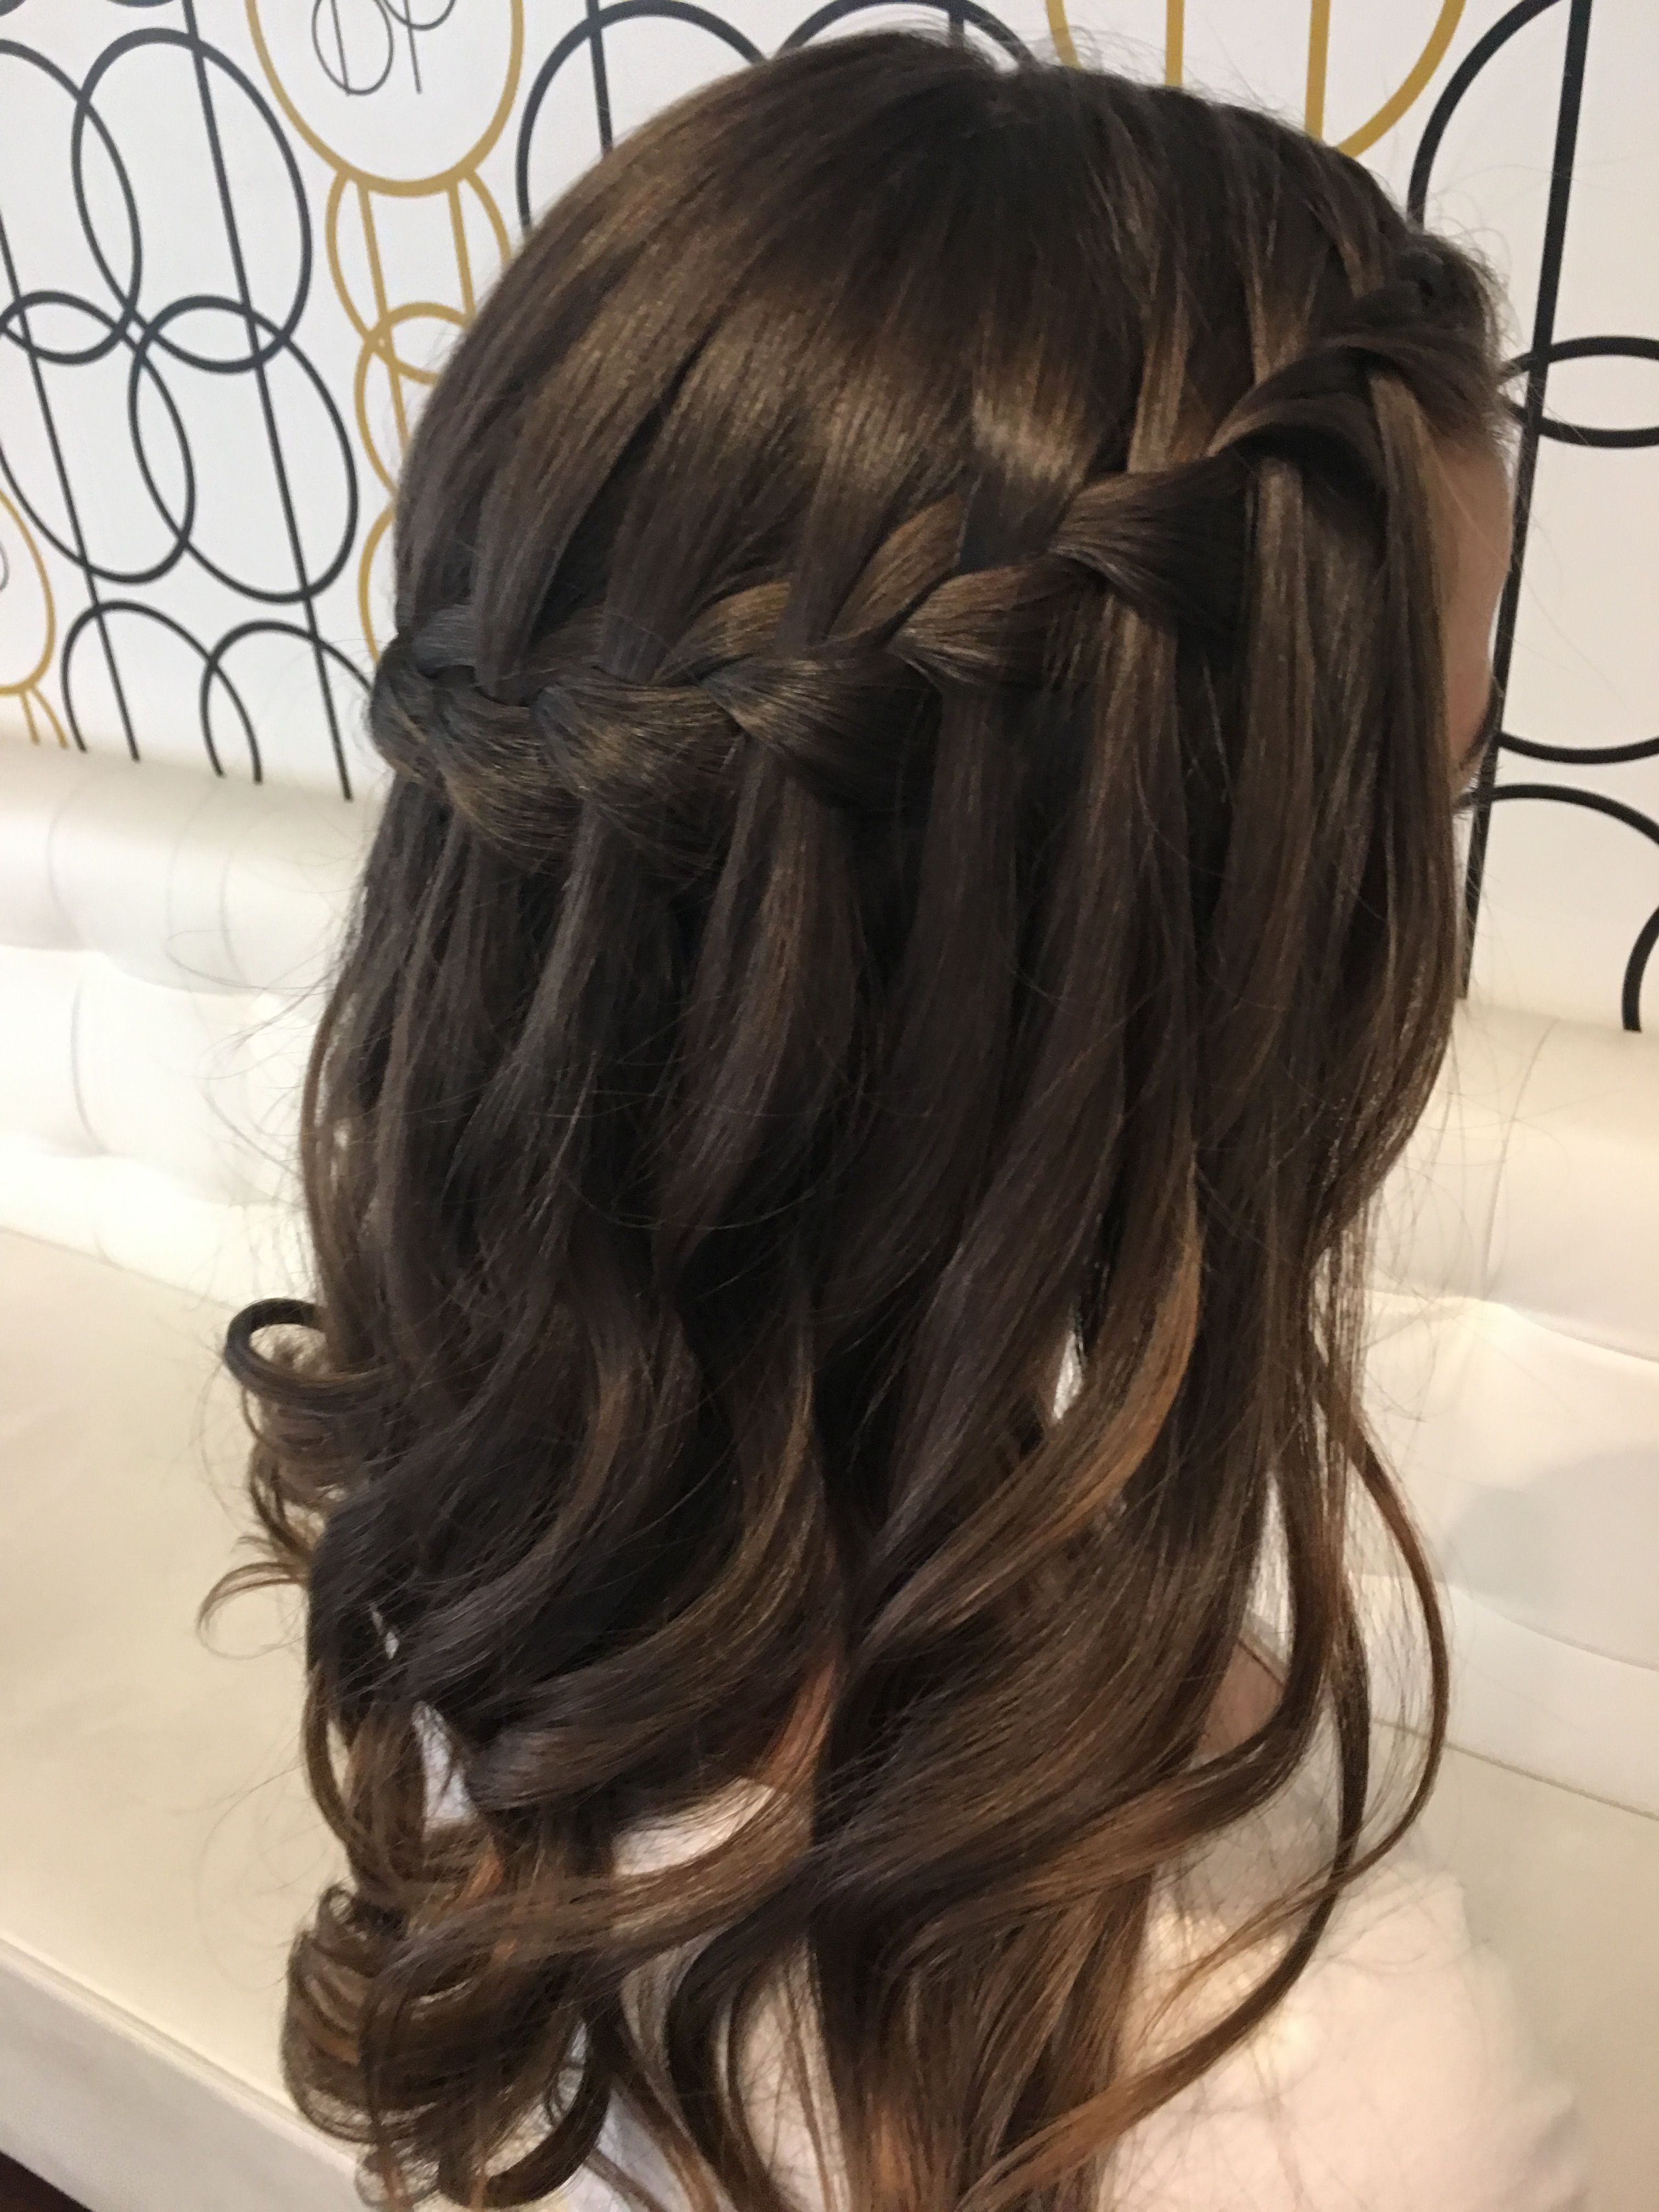 Waterfall braid with loose curls | Brittney Pena | Prom ...